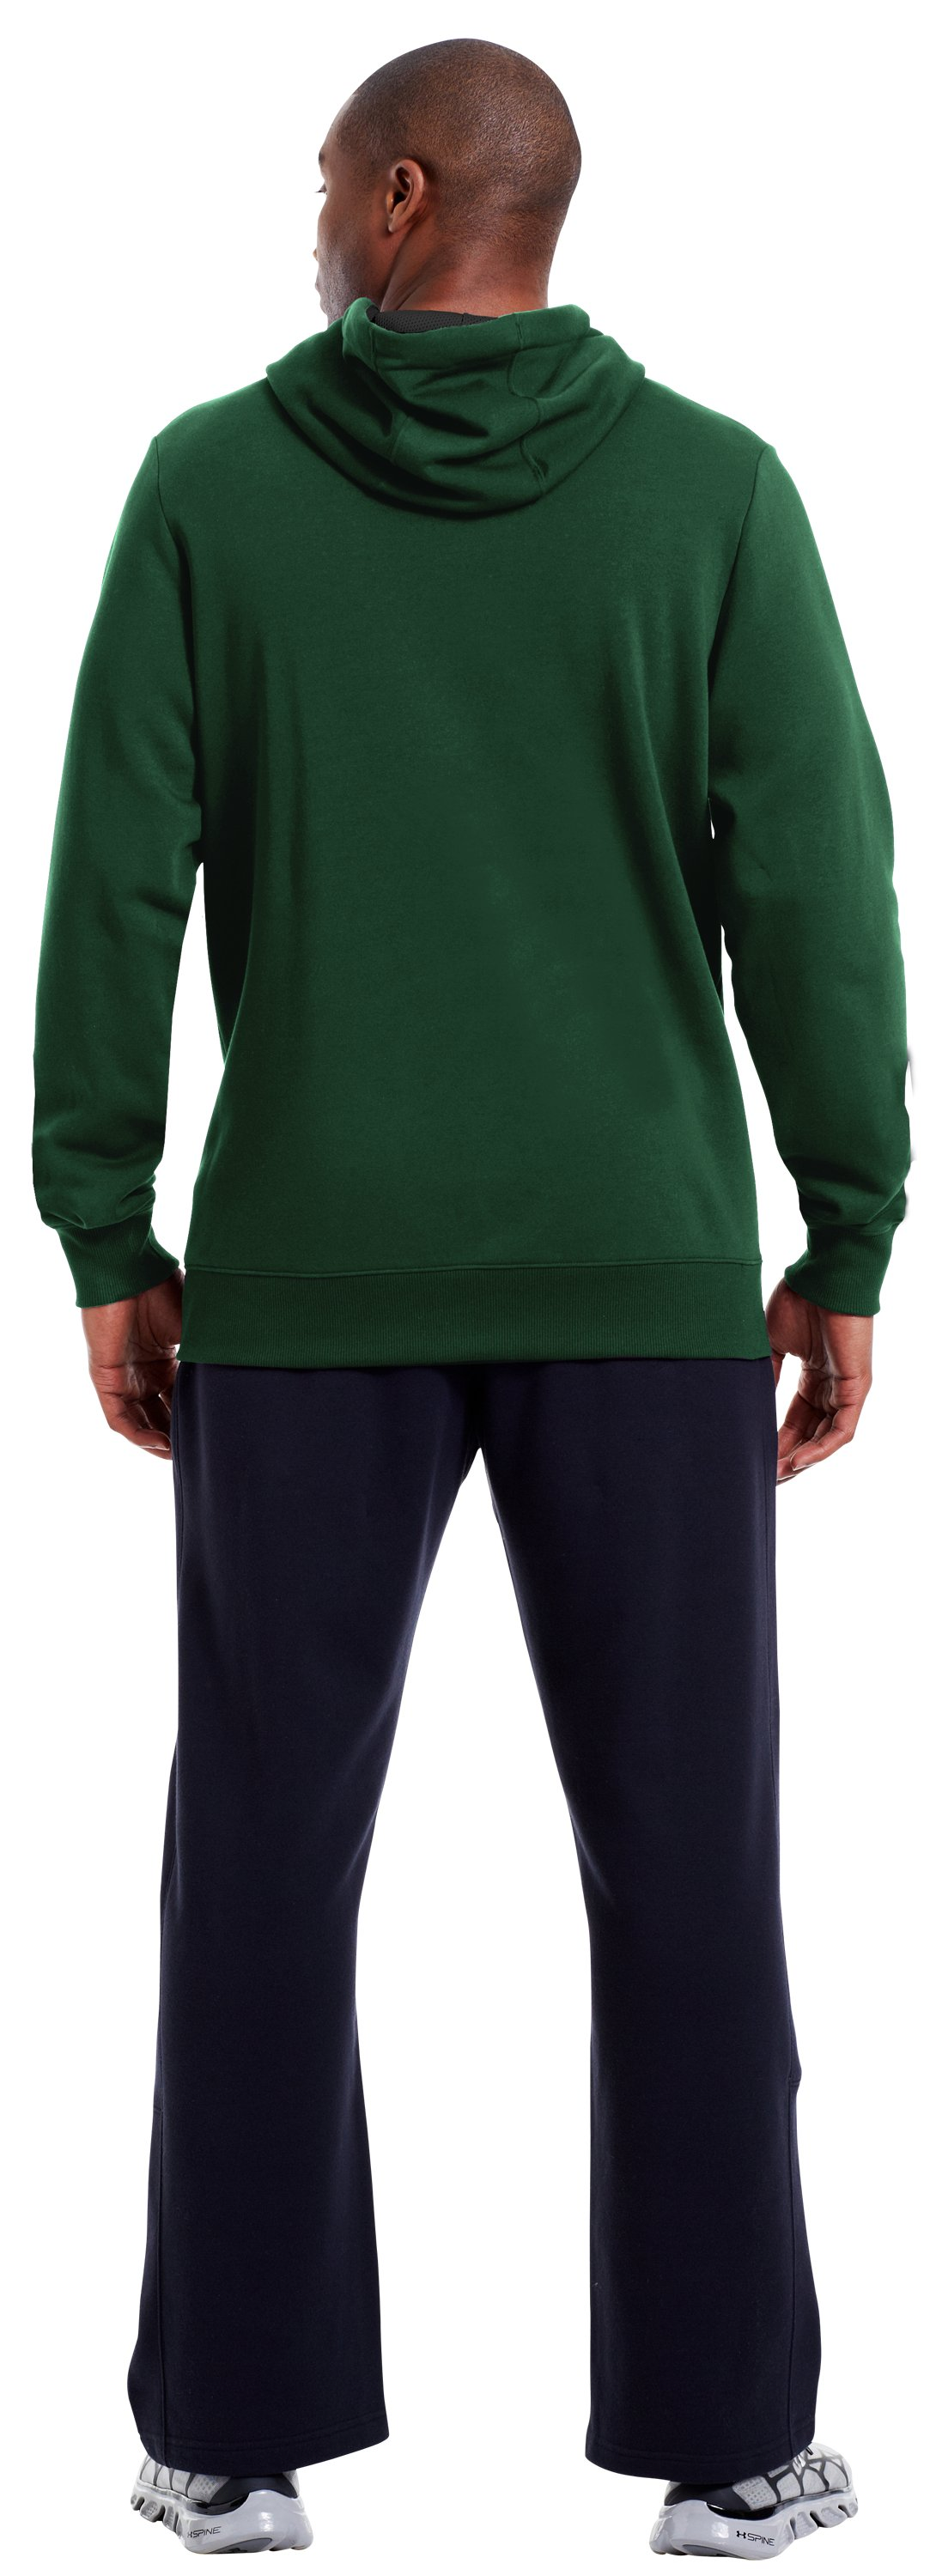 Men's Charged Cotton® Storm Battle Hoodie, Forest Green, Back